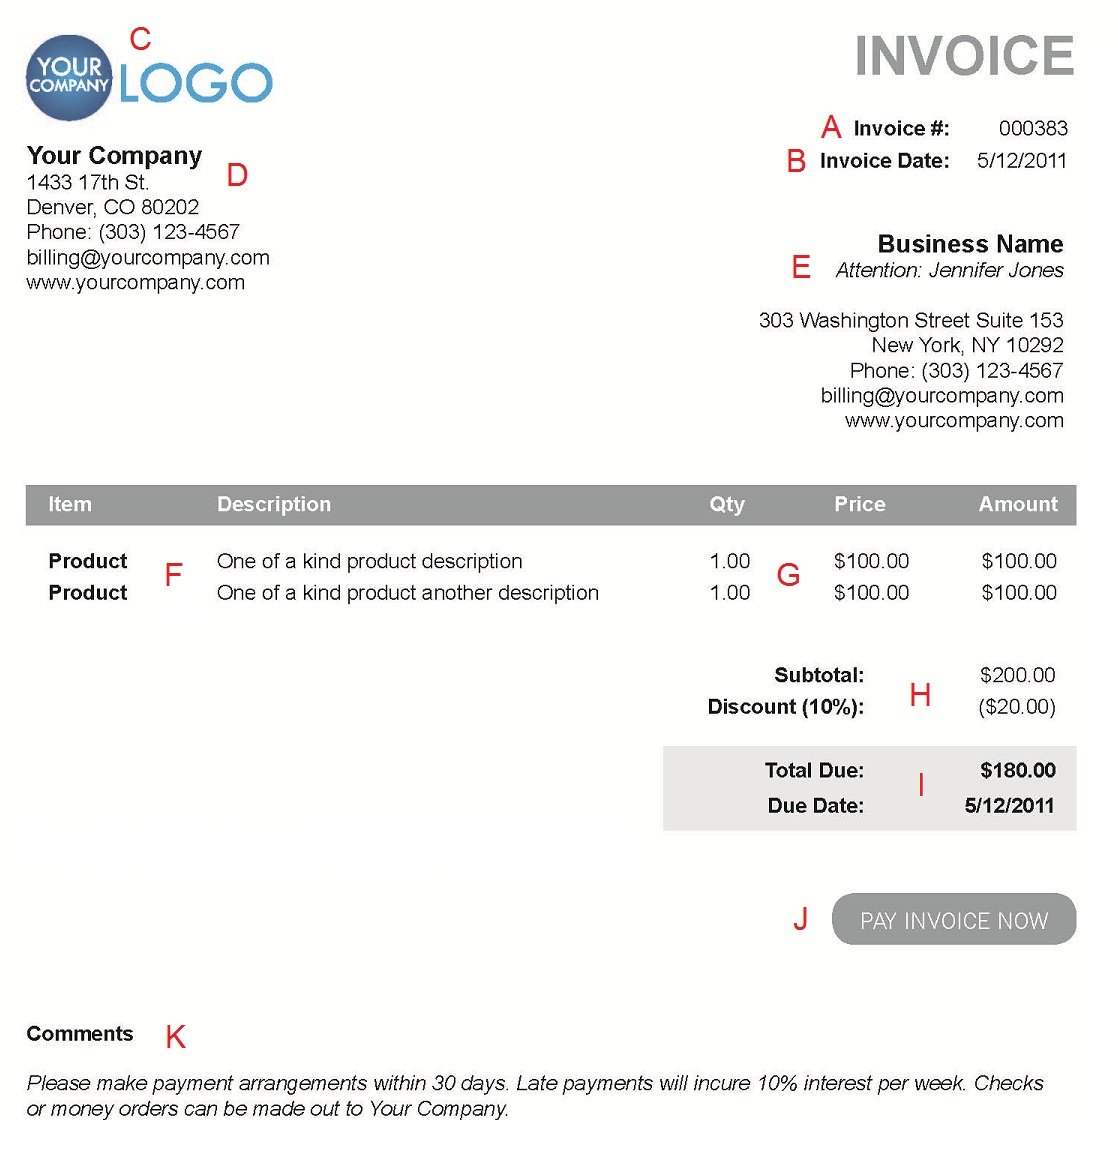 Picnictoimpeachus  Marvellous The  Different Sections Of An Electronic Payment Invoice With Excellent A  With Endearing Fedex International Invoice Also Honda Accord  Invoice Price In Addition Immigration Visa Invoice Payment Center And Invoice Design Template As Well As Invoice Xls Additionally Verizon Invoice From Paysimplecom With Picnictoimpeachus  Excellent The  Different Sections Of An Electronic Payment Invoice With Endearing A  And Marvellous Fedex International Invoice Also Honda Accord  Invoice Price In Addition Immigration Visa Invoice Payment Center From Paysimplecom